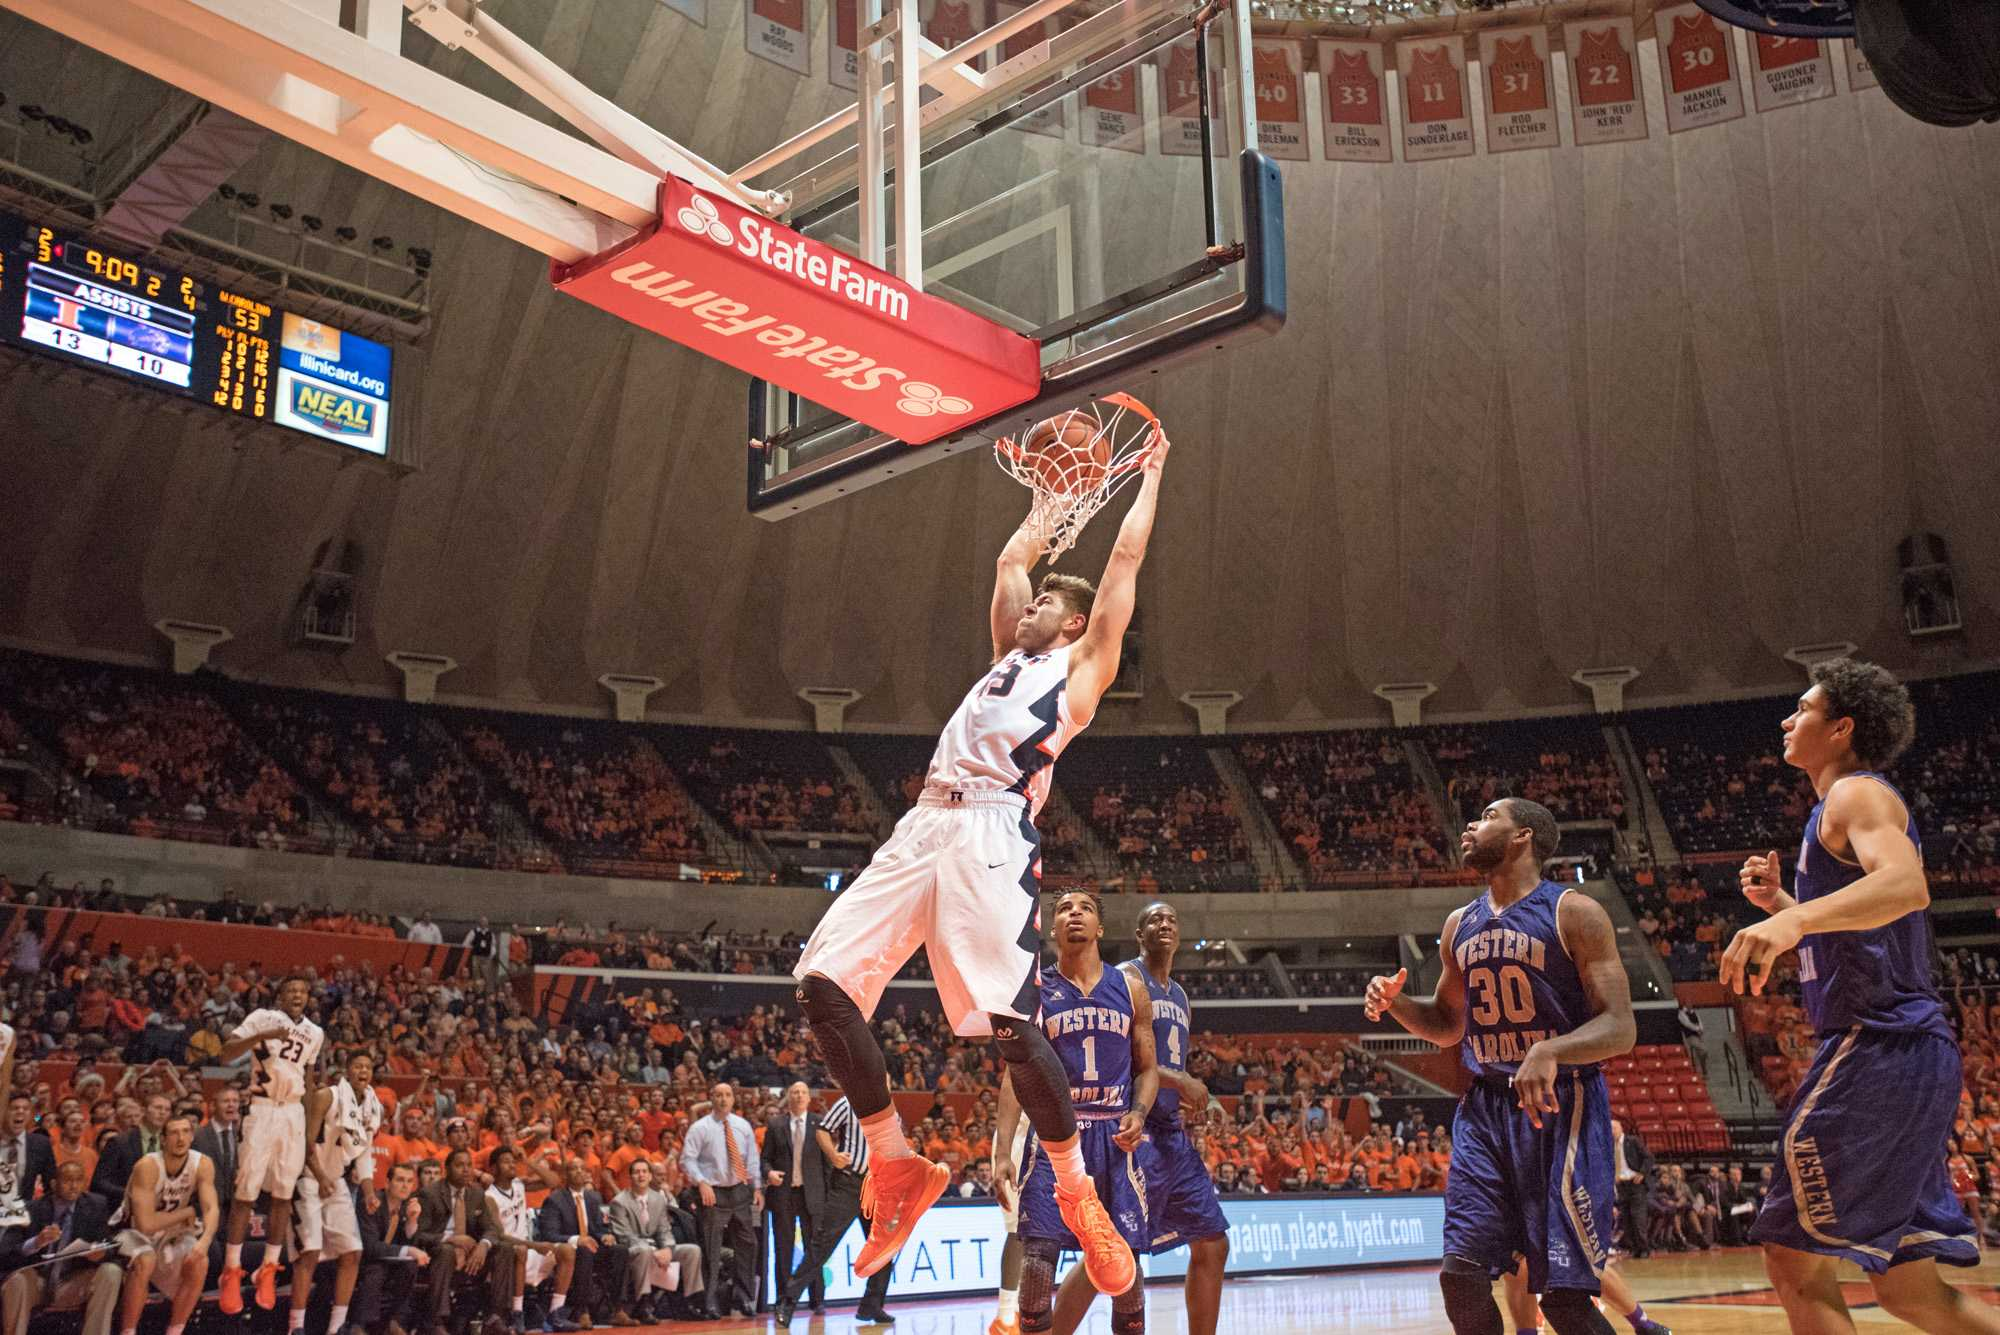 Forward Michael Finke dunks the ball during the game against Western Carolina at the State Farm Center on Saturday. Illinois won 80-68.